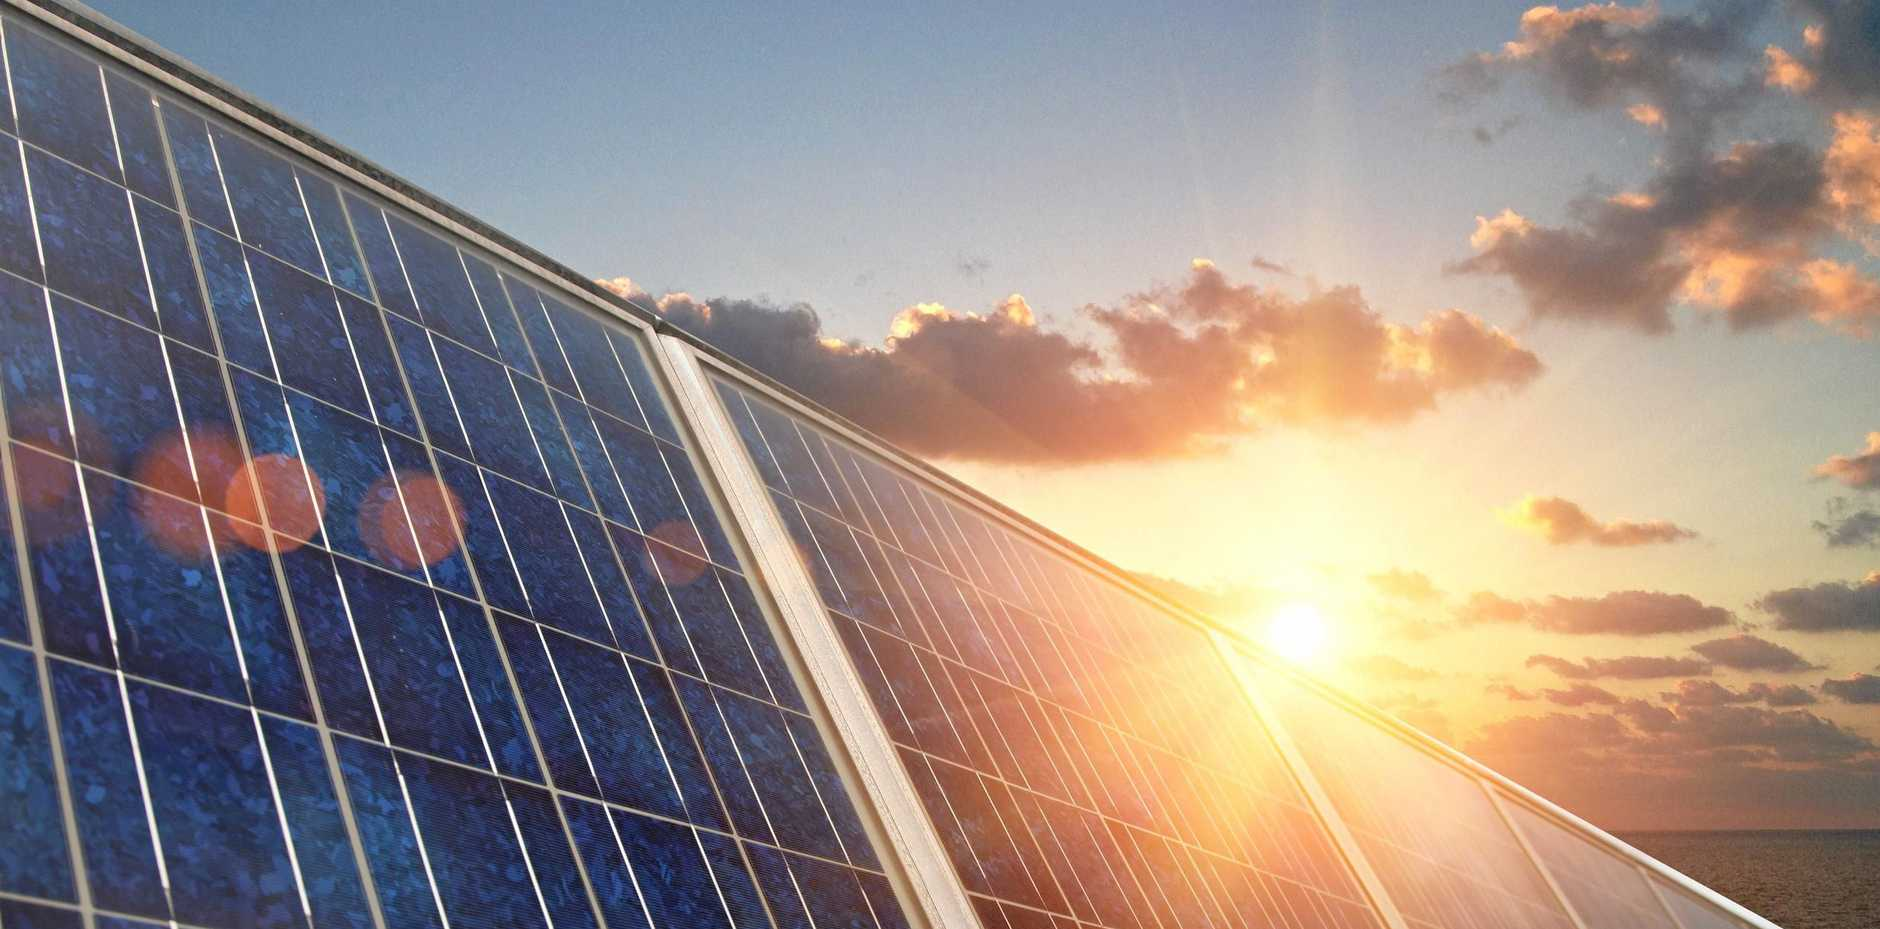 SIMMERING OPINIONS: Warwick weighs in from all angles on news of a massive multi-million dollar solar farm.